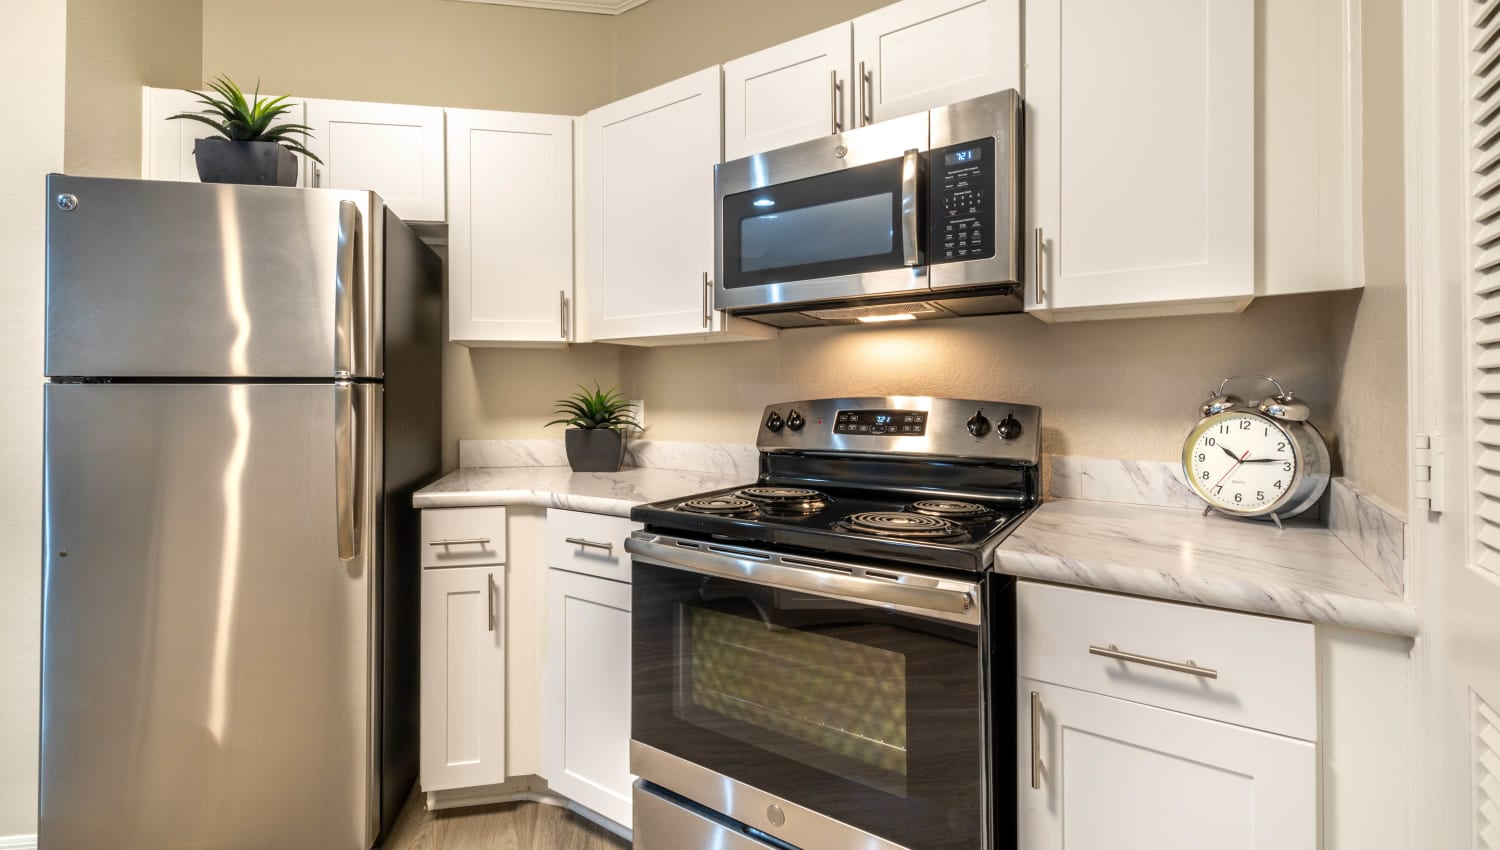 Stainless-steel appliances and granite countertops in a model home's kitchen at Cape House in Jacksonville, Florida